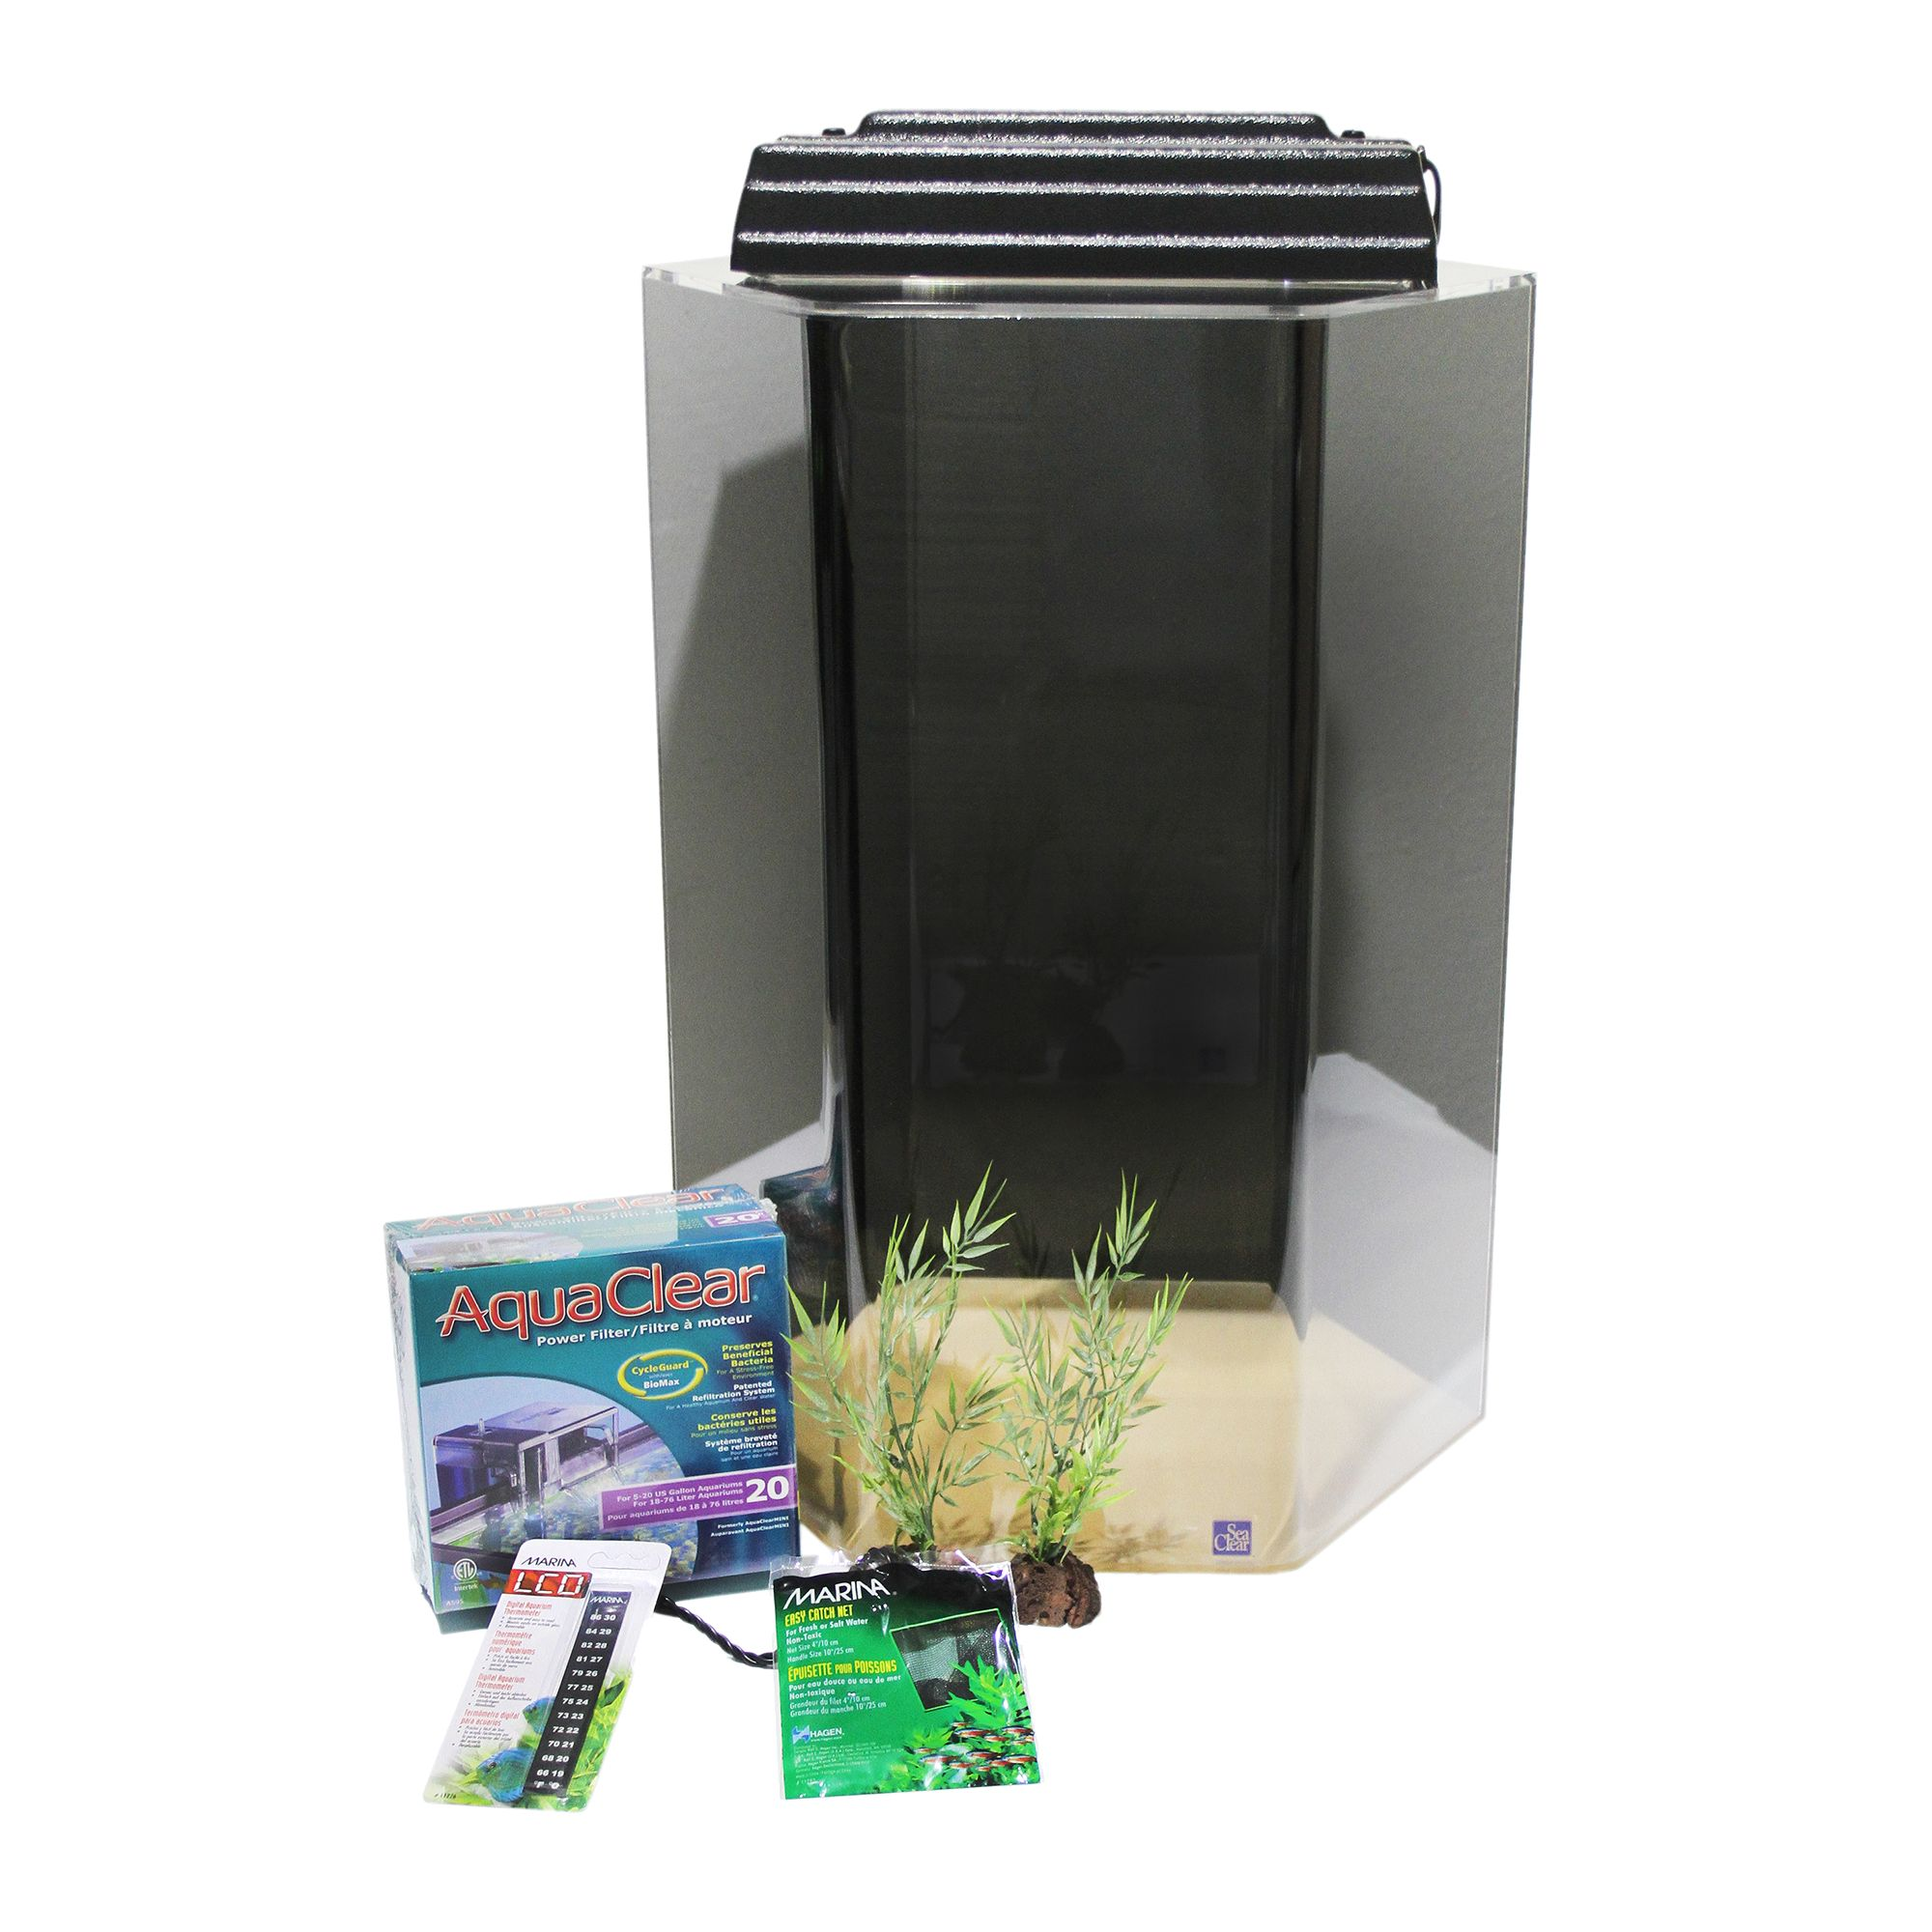 Seaclear hexagon tank 20 gallon aquarium kit black pet for 20 gallon fish tank kit